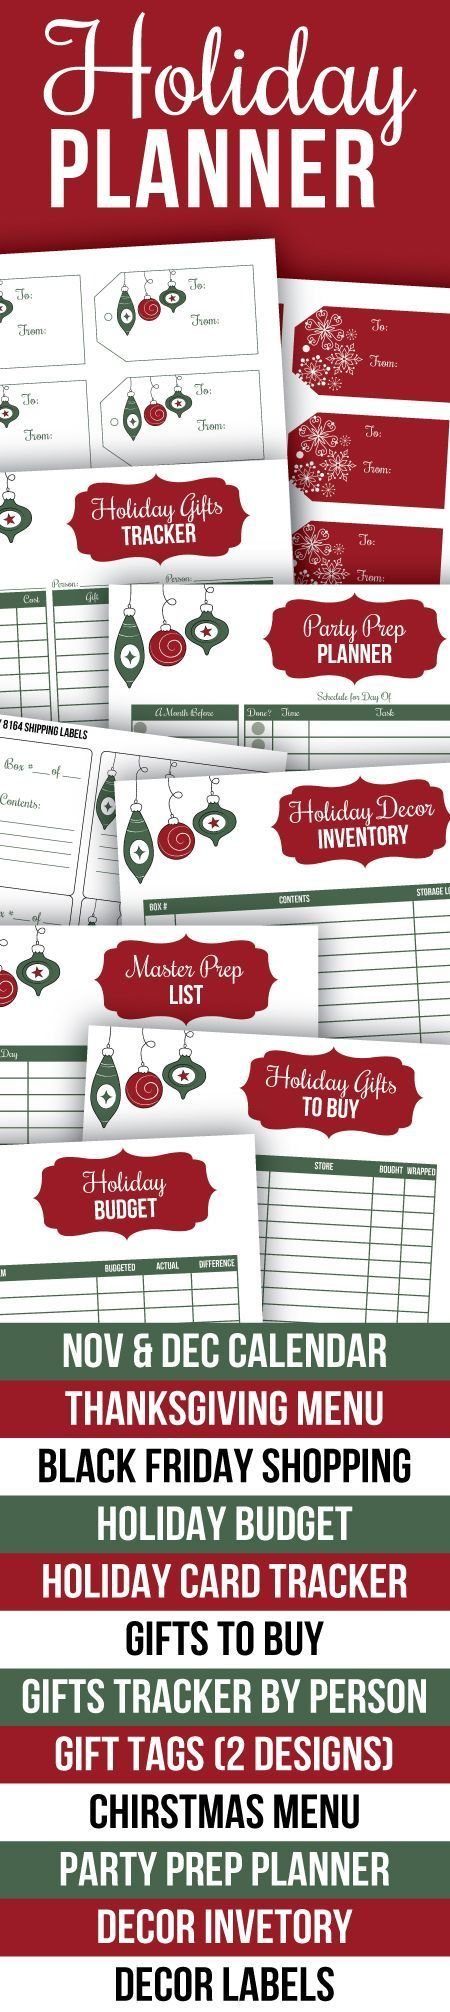 Printable Holiday Planner - everything you need to be organized this Christmas and Thanksgiving. Includes Nov and Dec calendars, Thanksgiving menu planner, Black Friday shopping list, holiday budget, holiday card tracker, gift lists, printable gift tags,